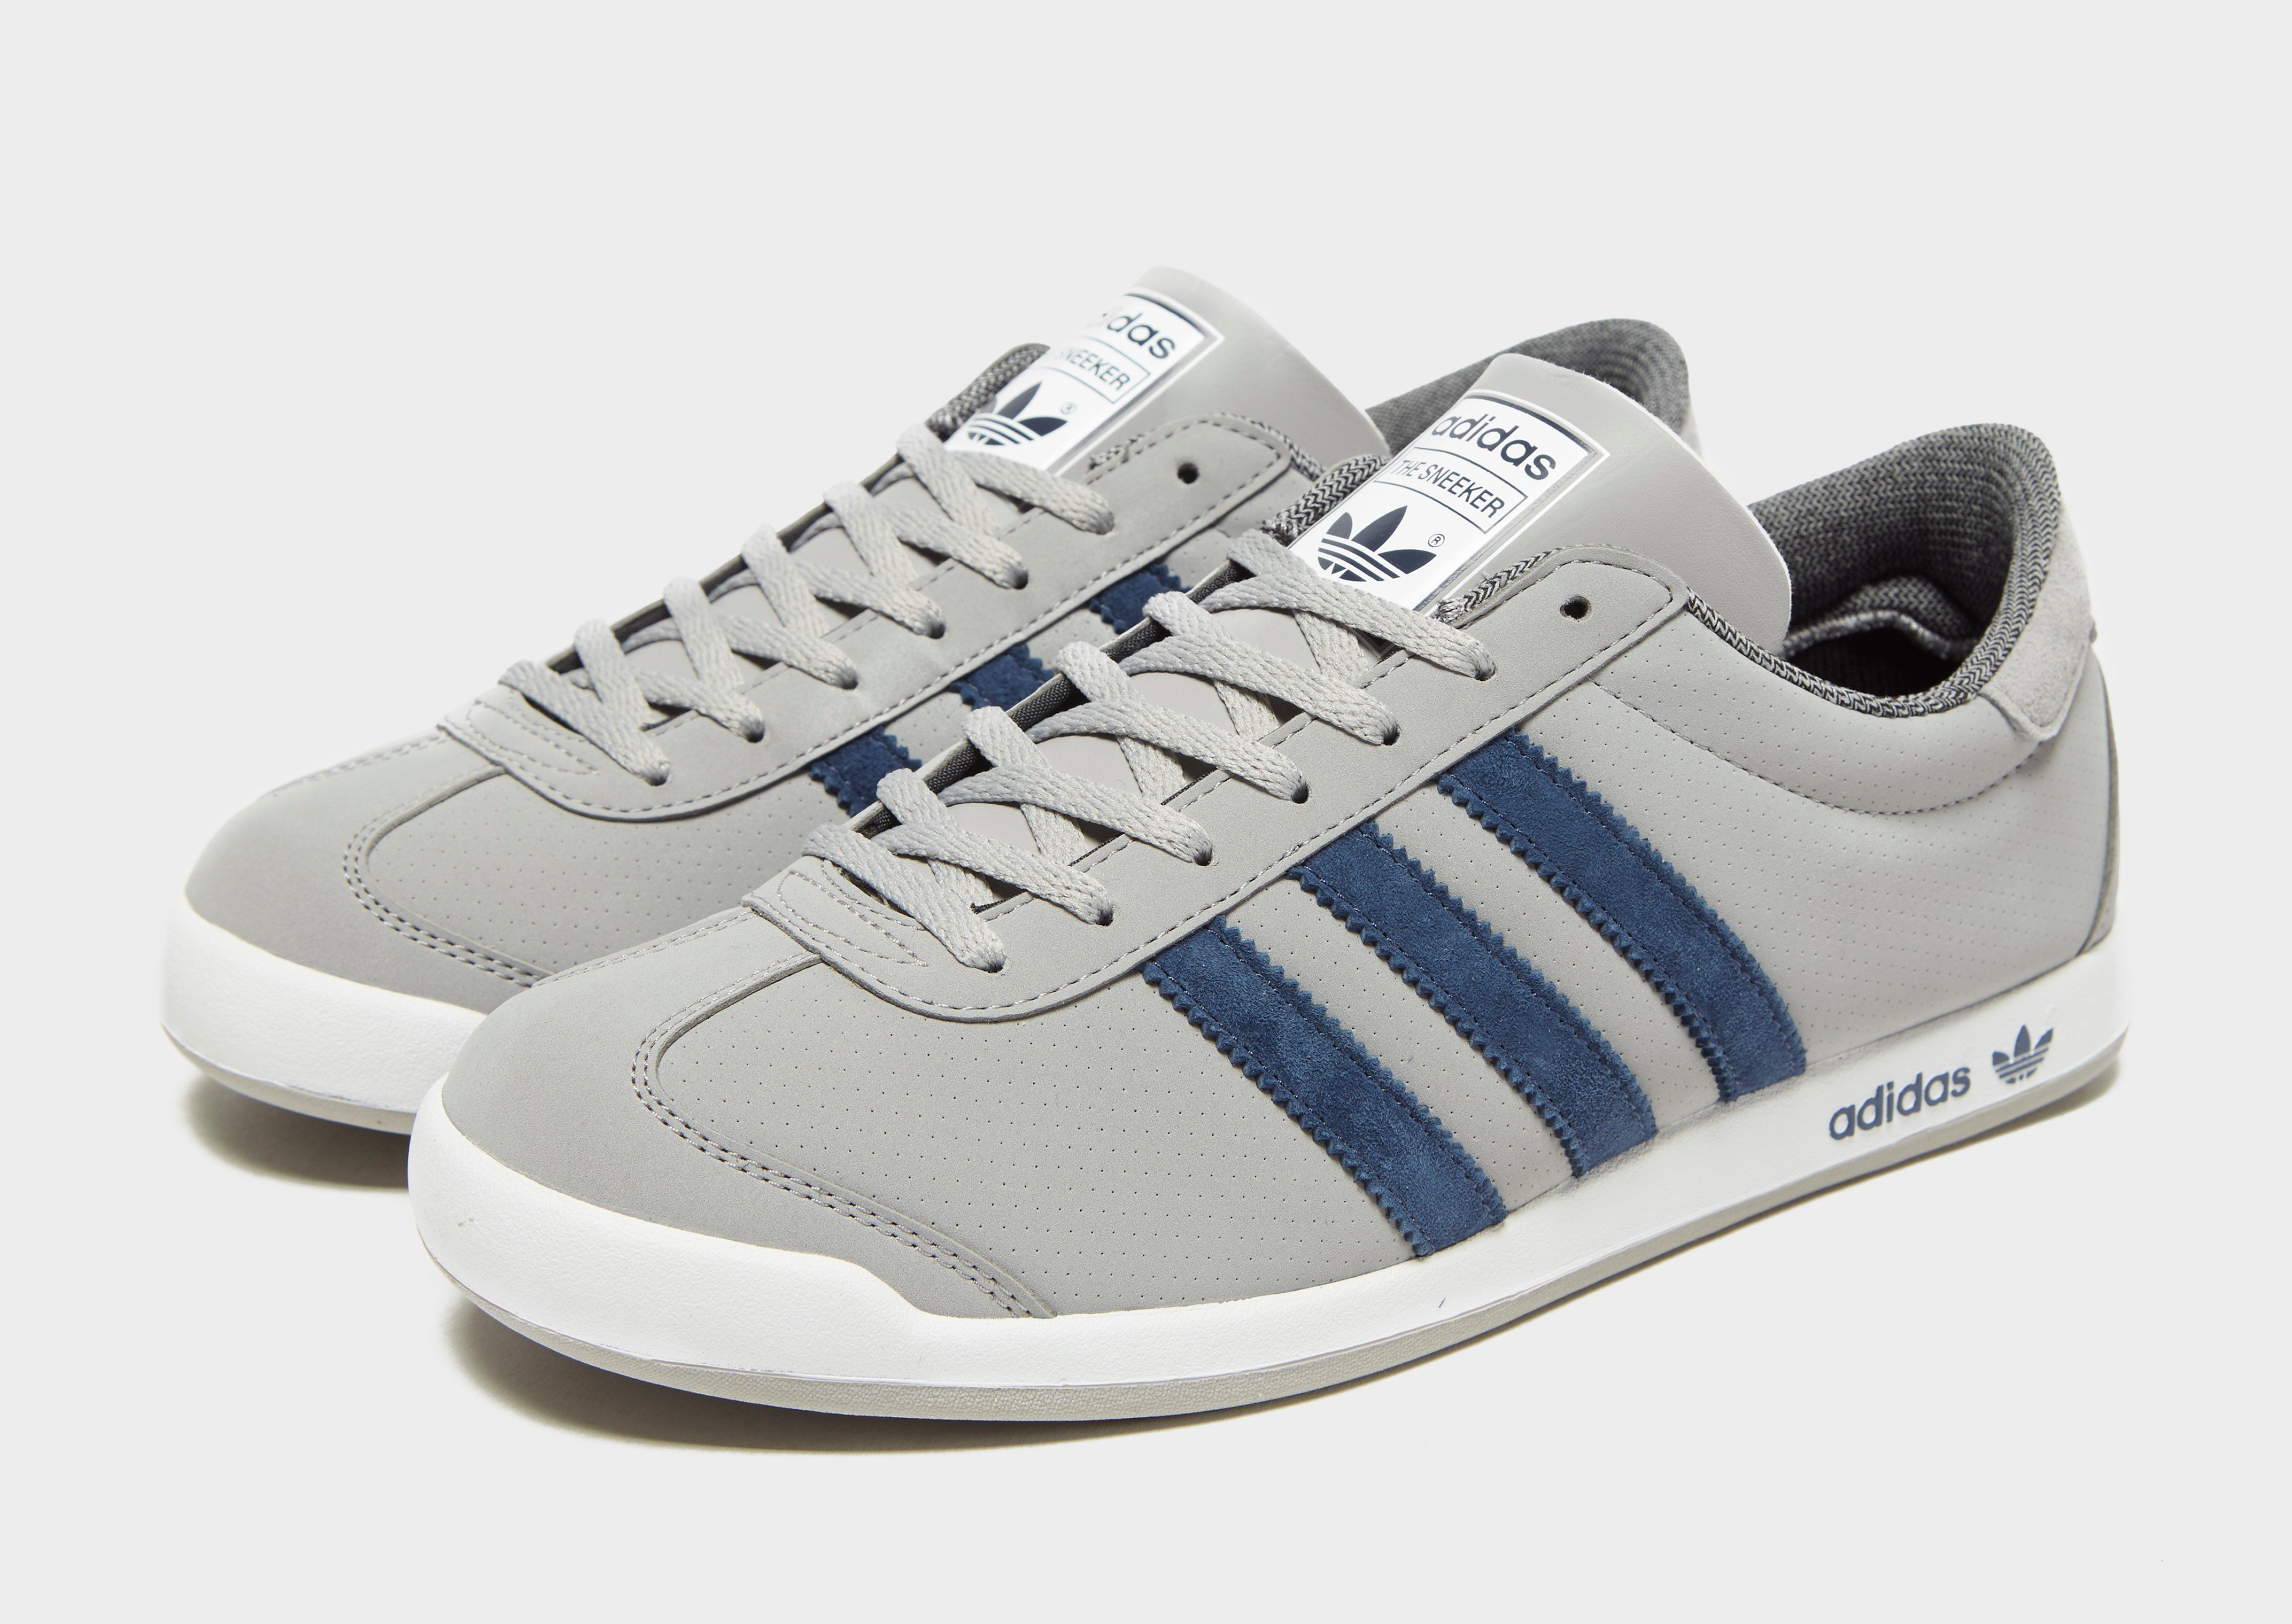 adidas Originals The Sneeker